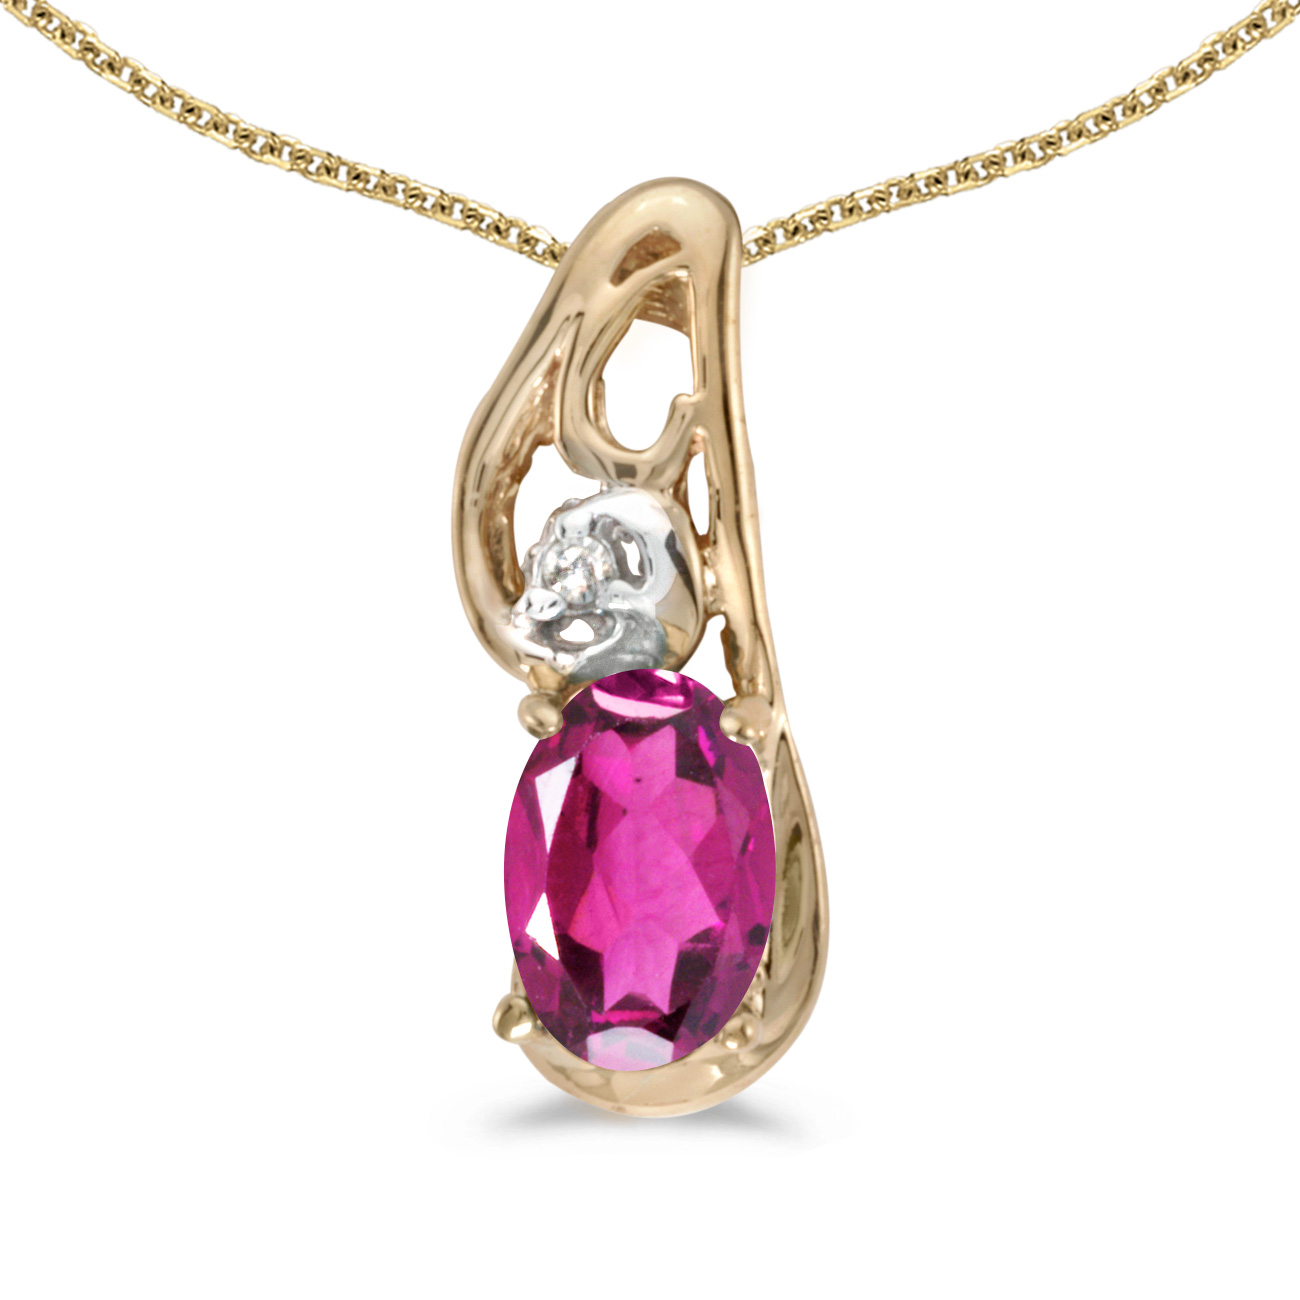 "10k Yellow Gold Oval Pink Topaz And Diamond Pendant with 16"" Chain by Yellow-Gold Pins"